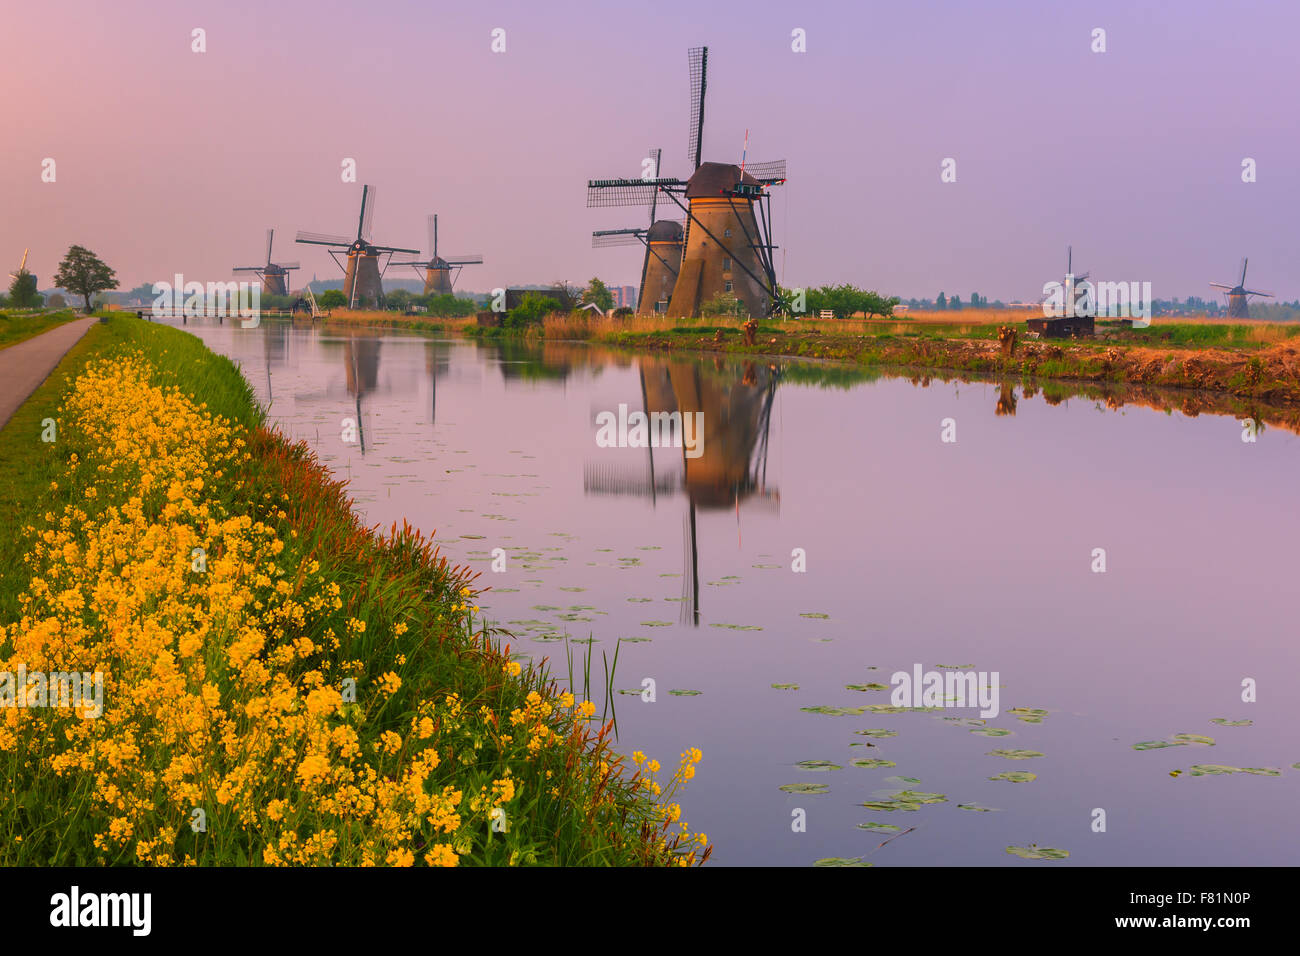 The famous windmills at the Kinderdijk, south Holland, Netherlands Stock Photo